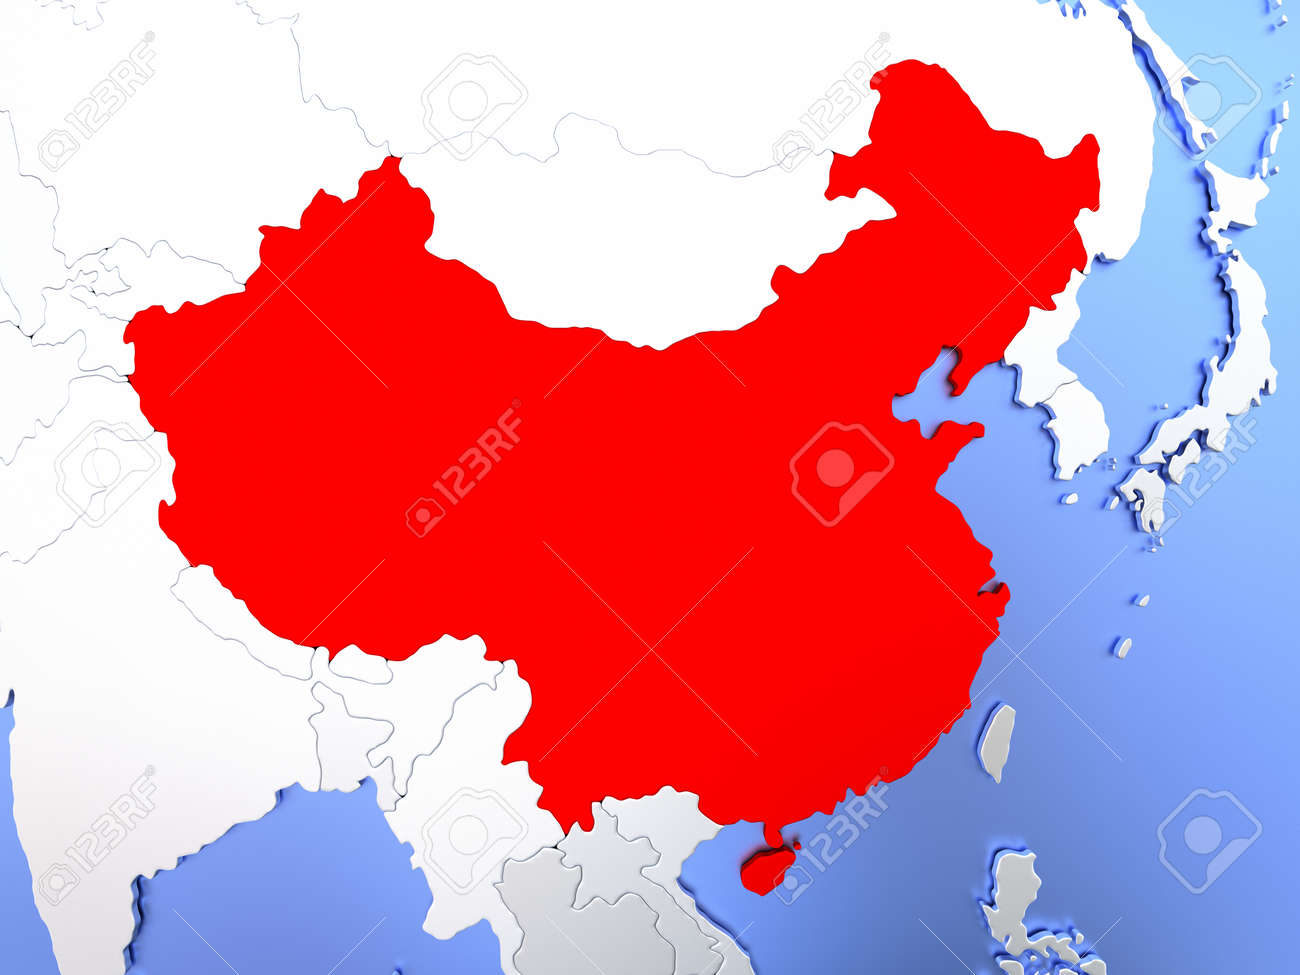 Map Of China Highlighted In Red On Simple Shiny Metallic Map